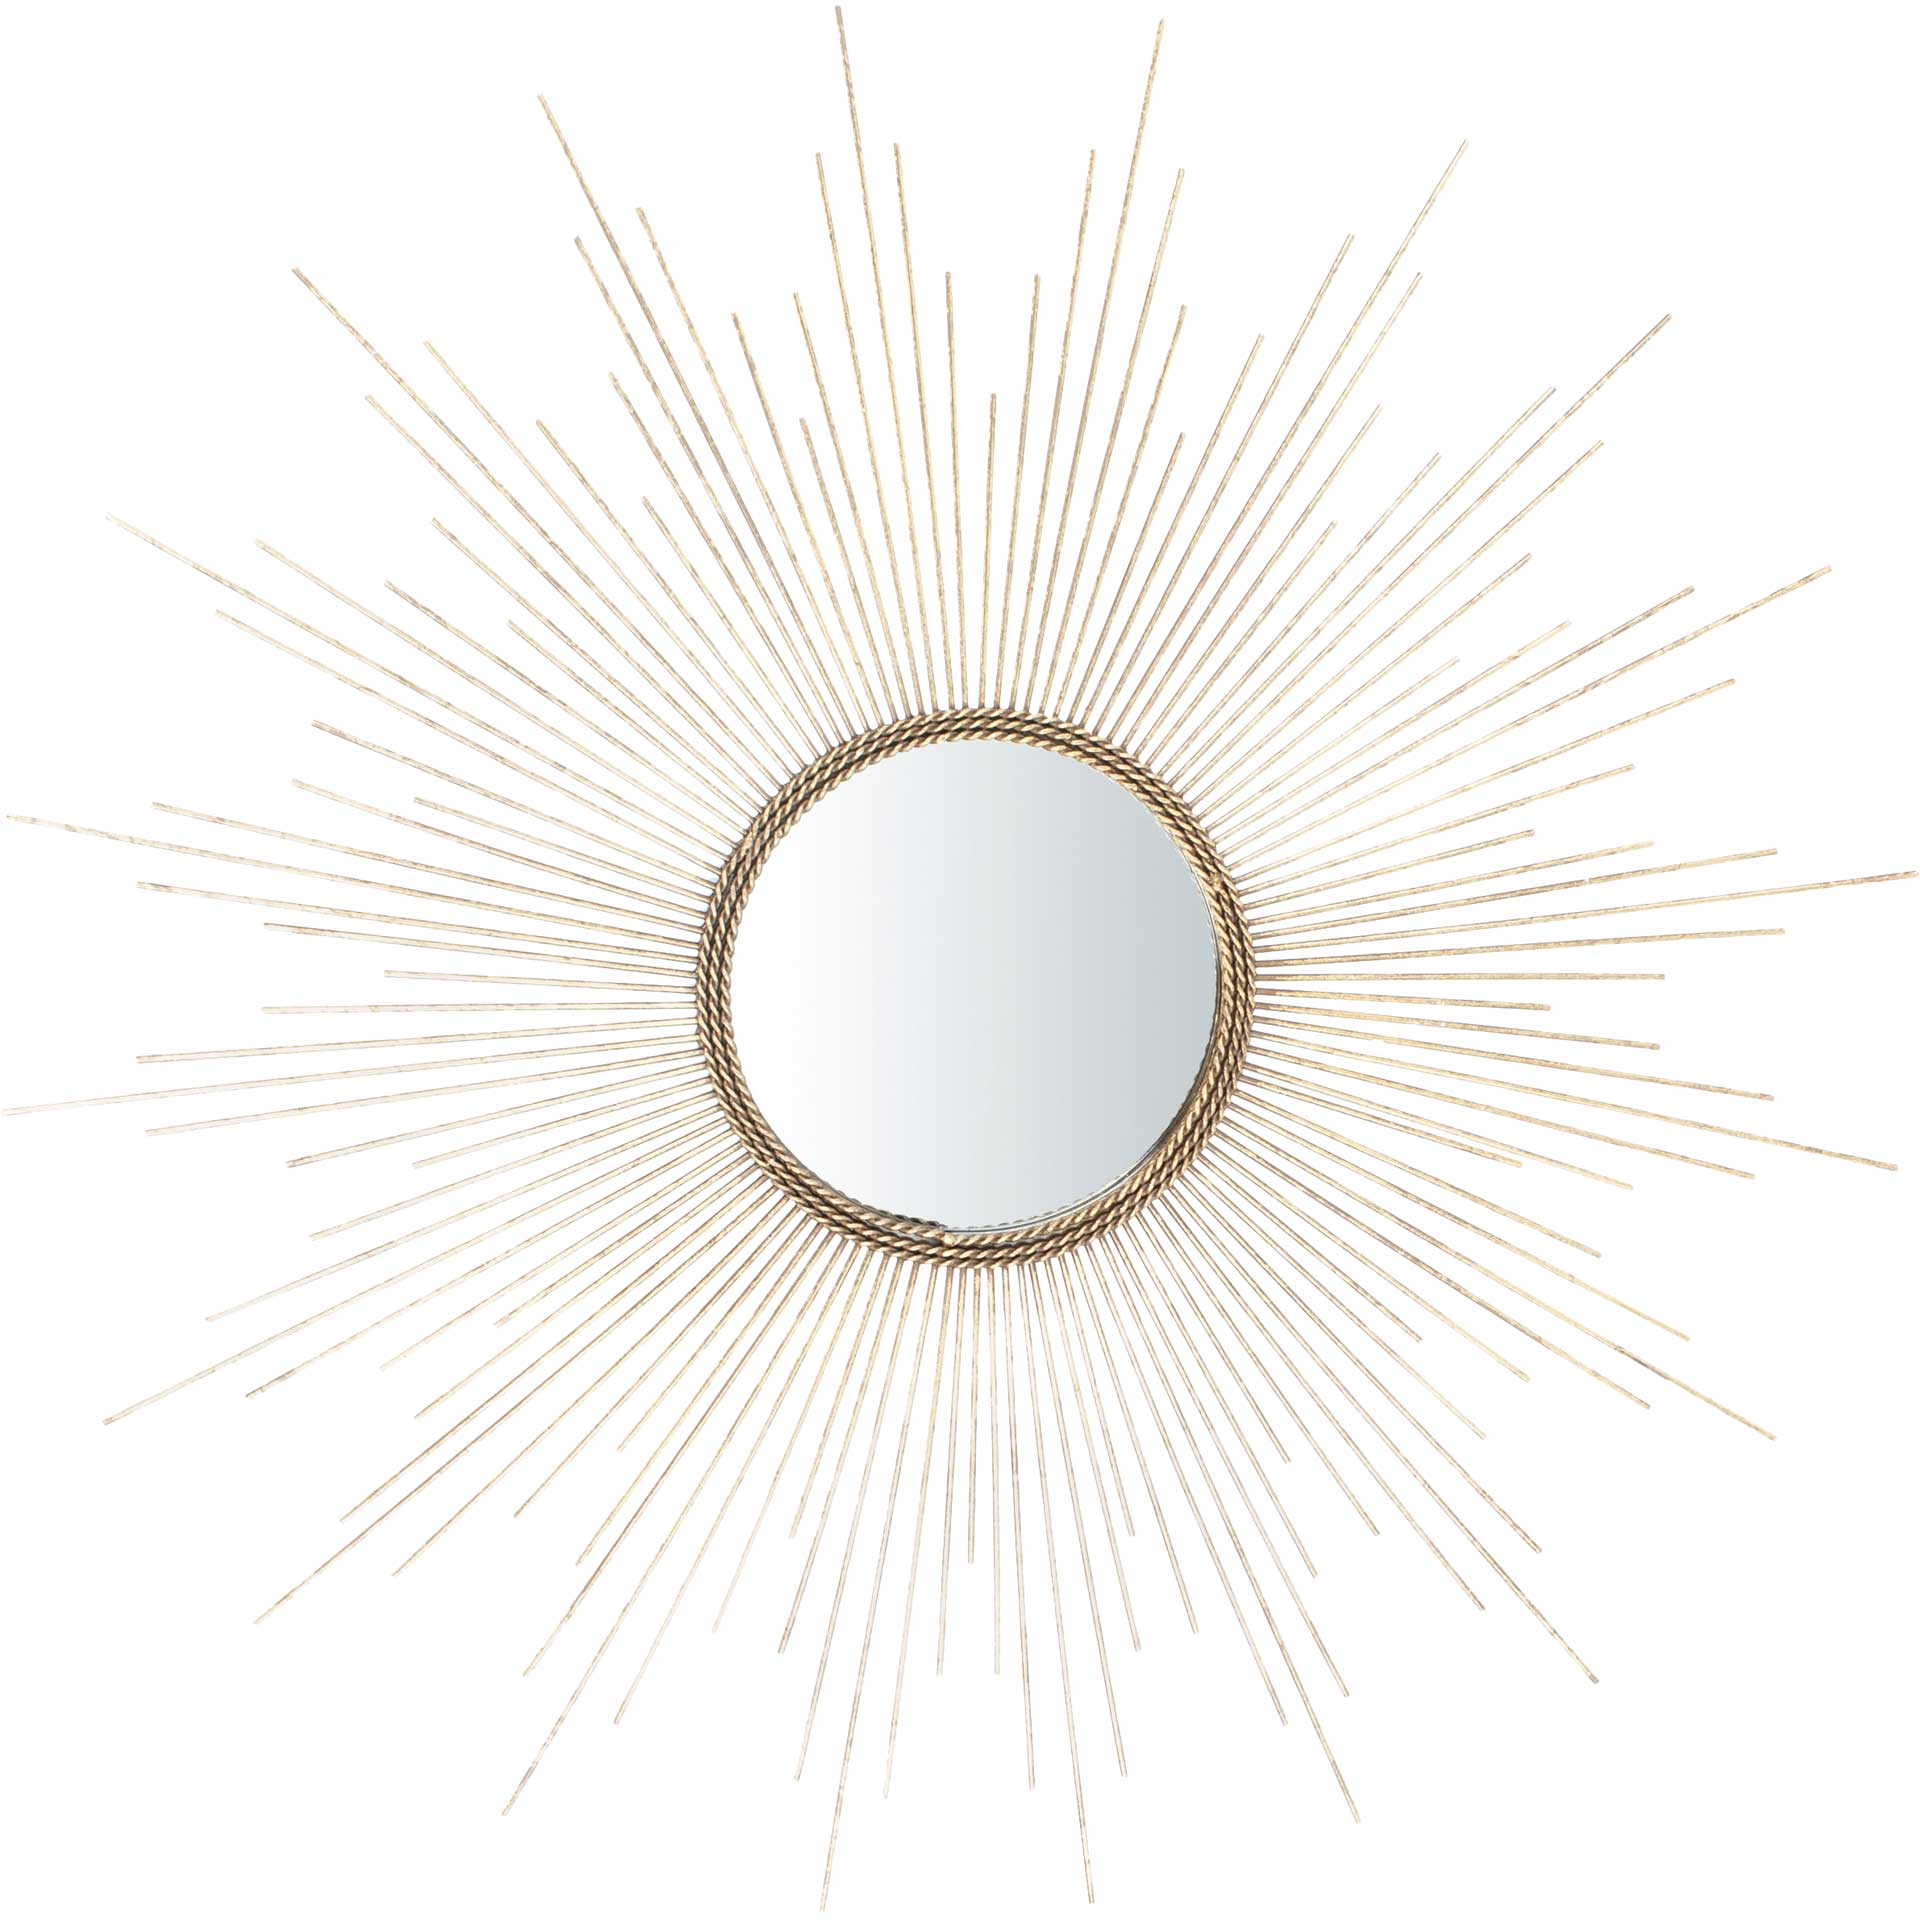 Maverick Sunburst Mirror Goldleaf